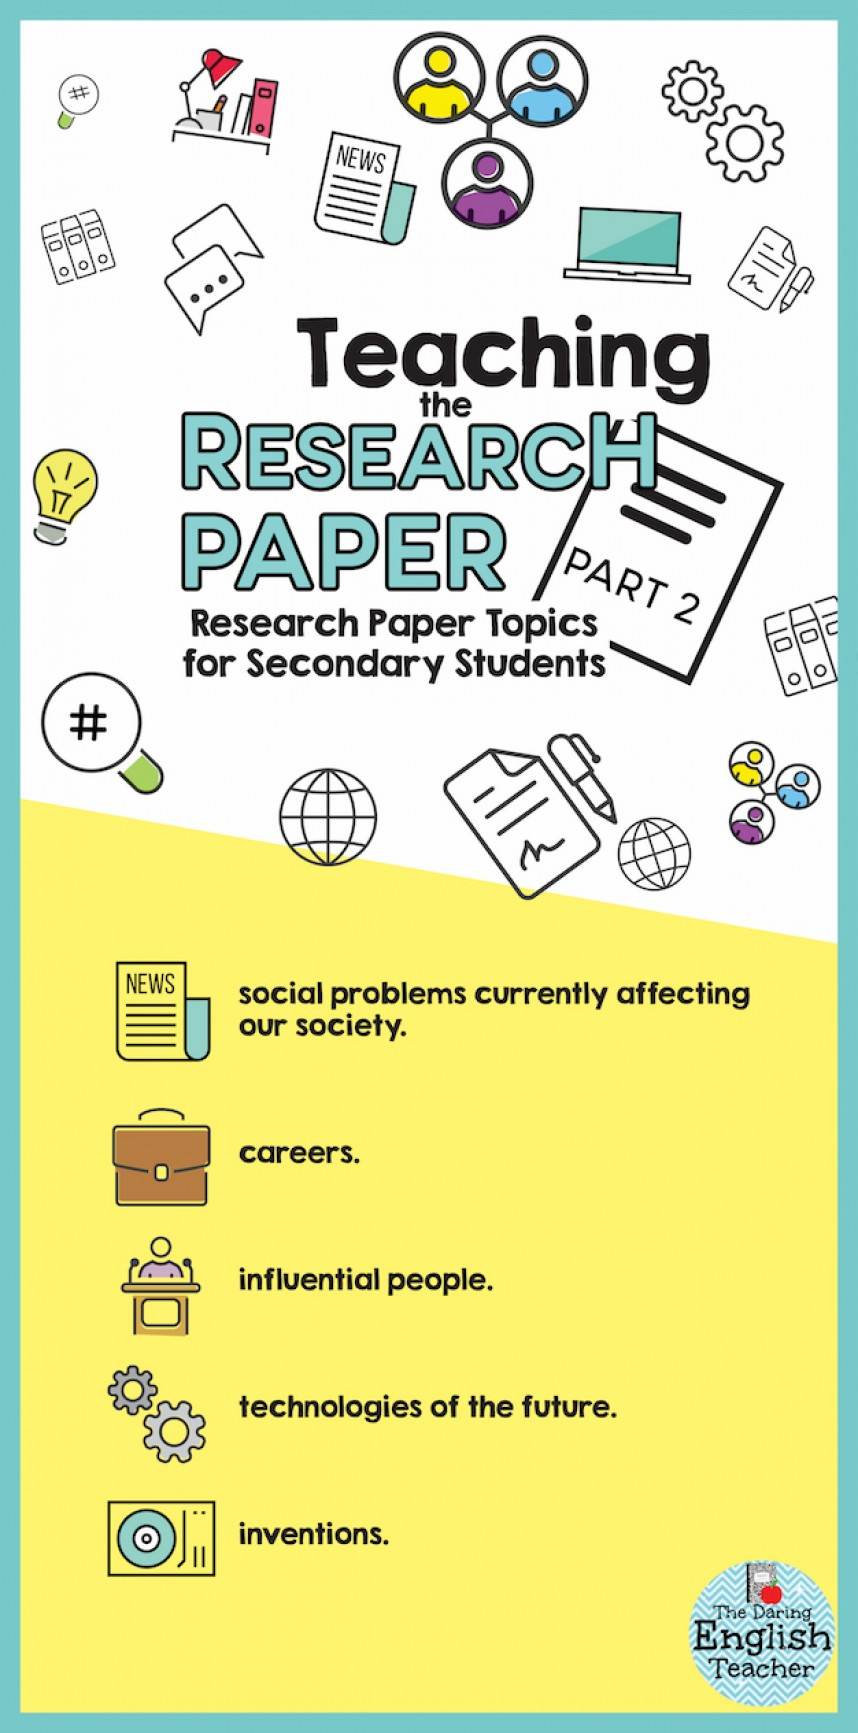 022 Research Paper Interesting Topics Incredible Funny